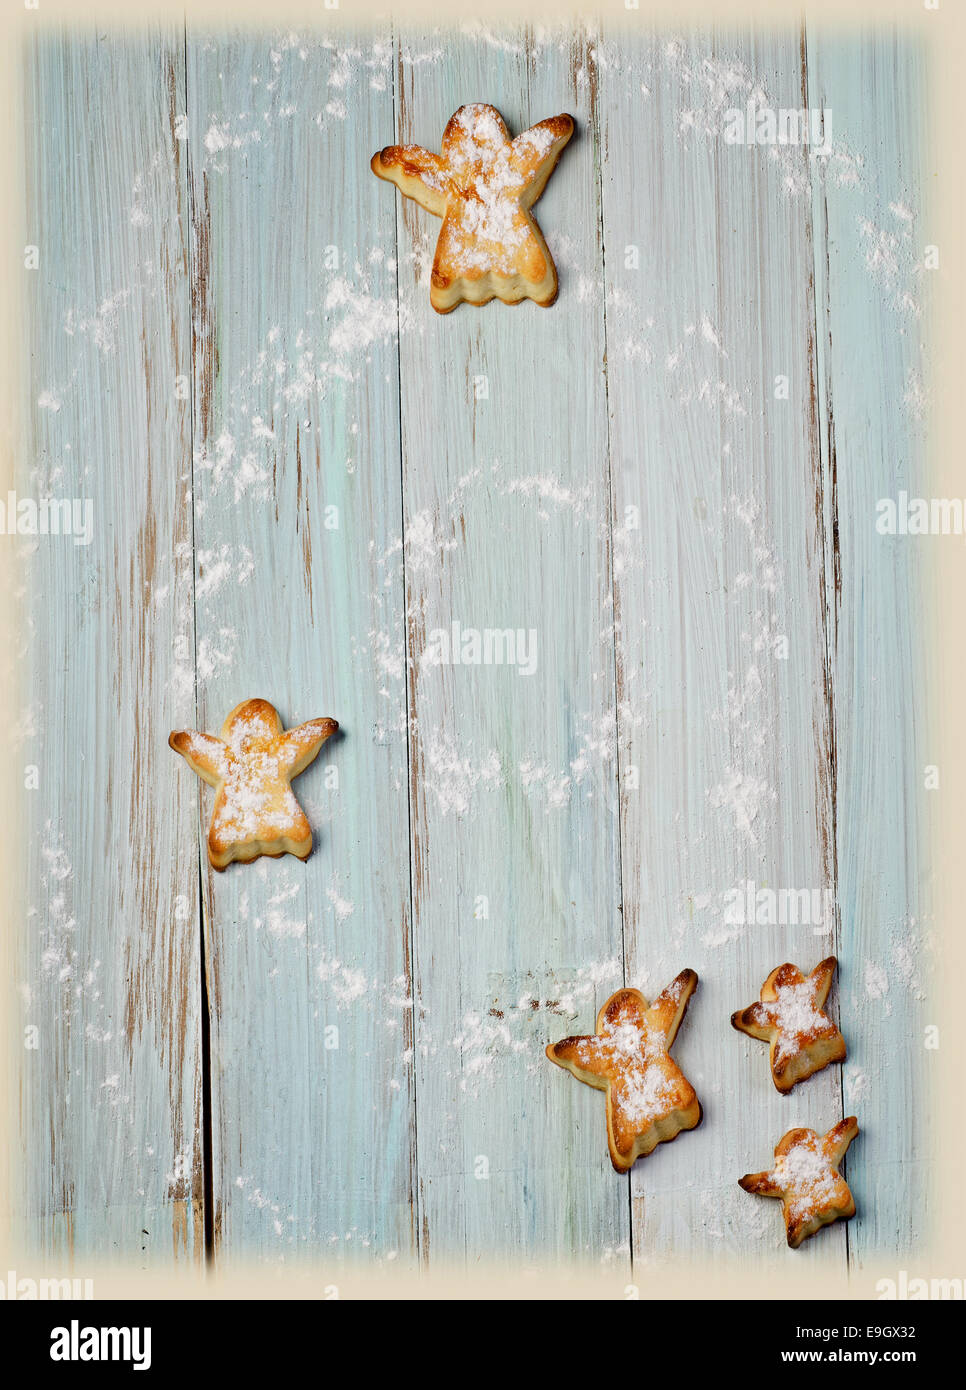 Homemade  cookies on wooden table. Selective focus - Stock Image